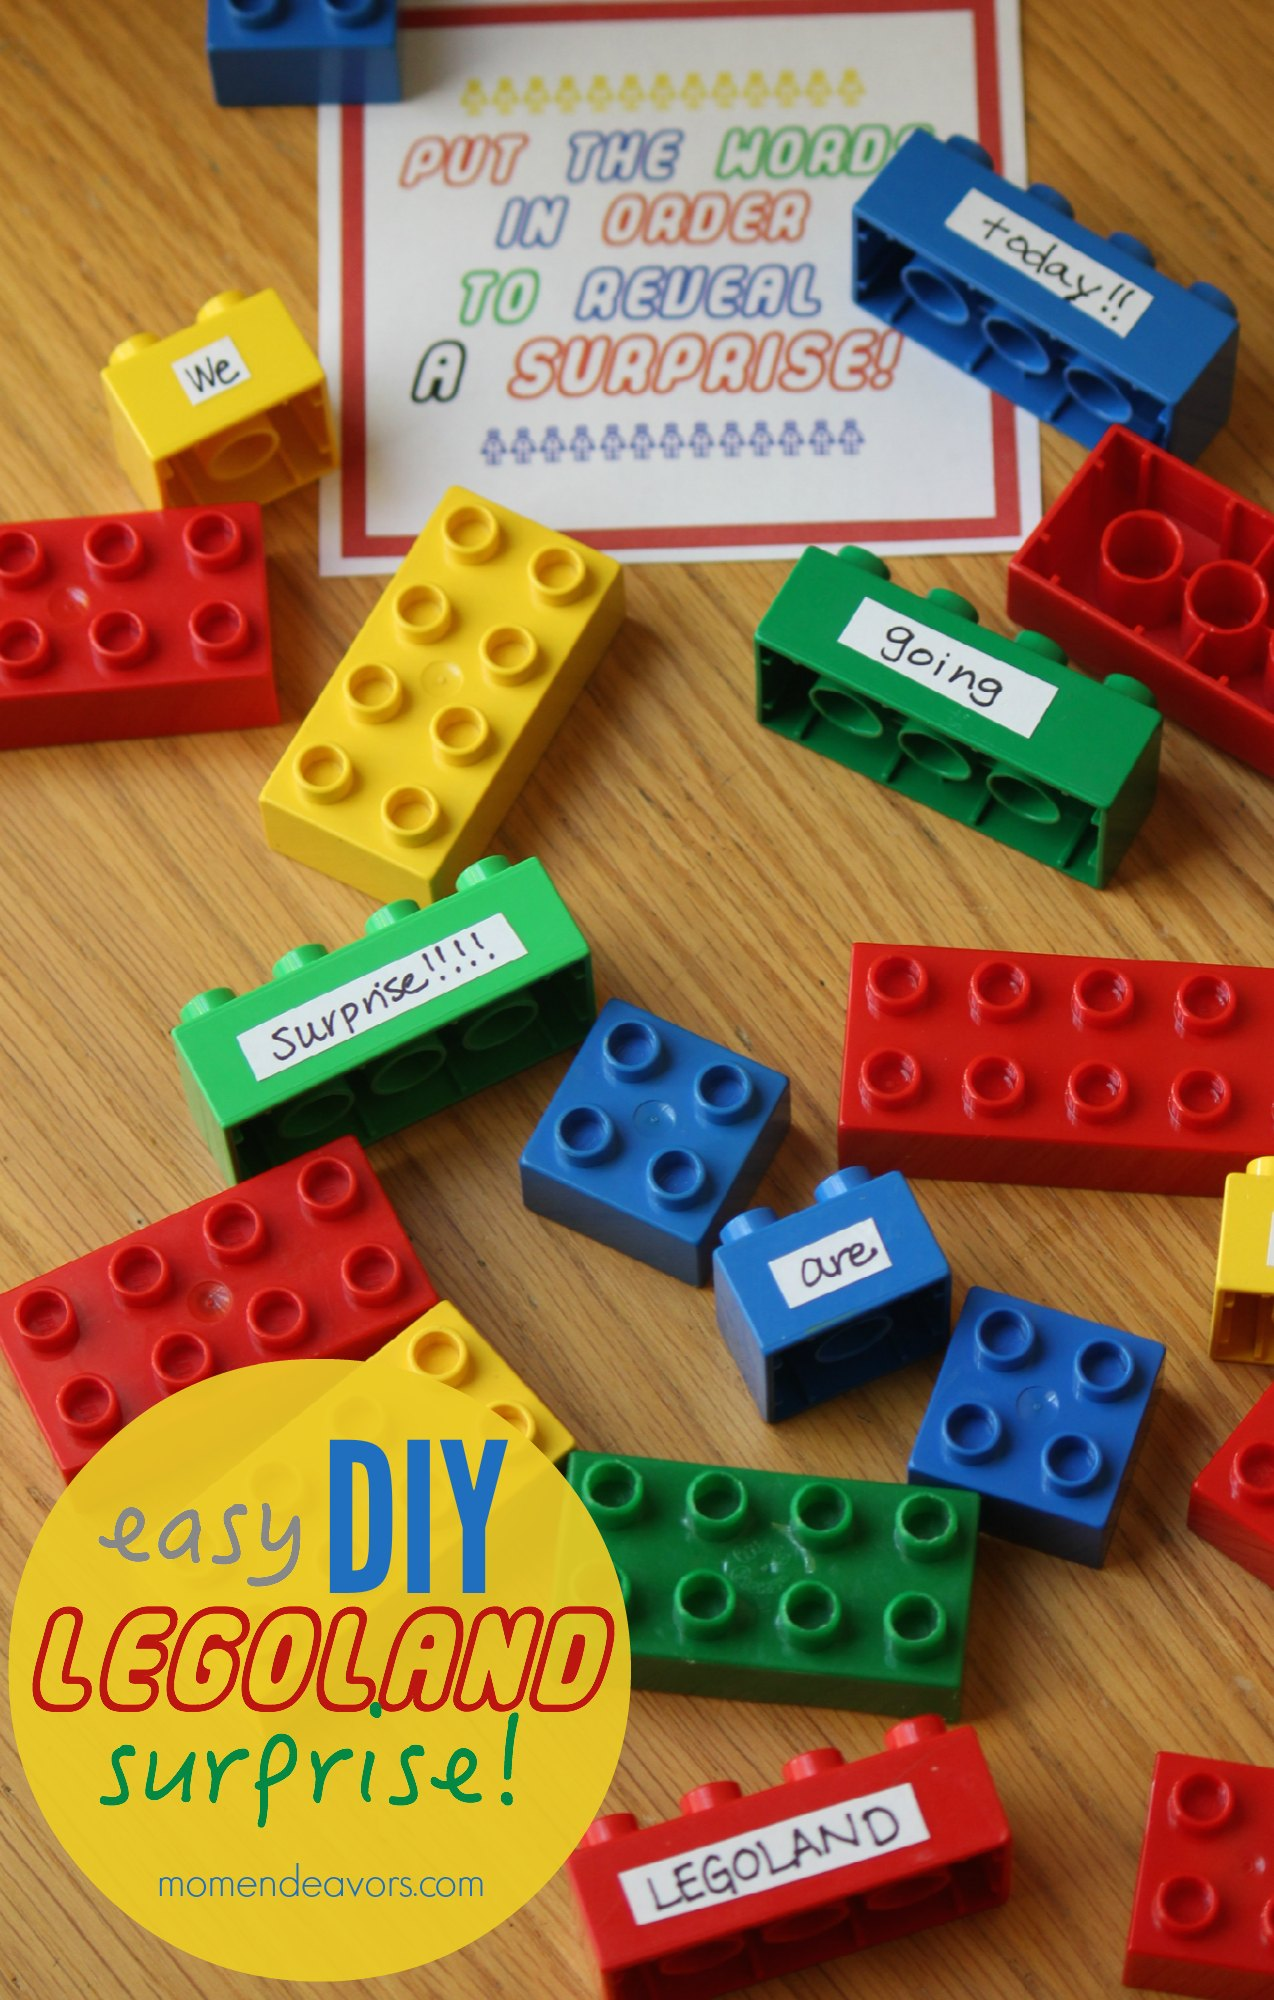 DIY Legoland Surprise